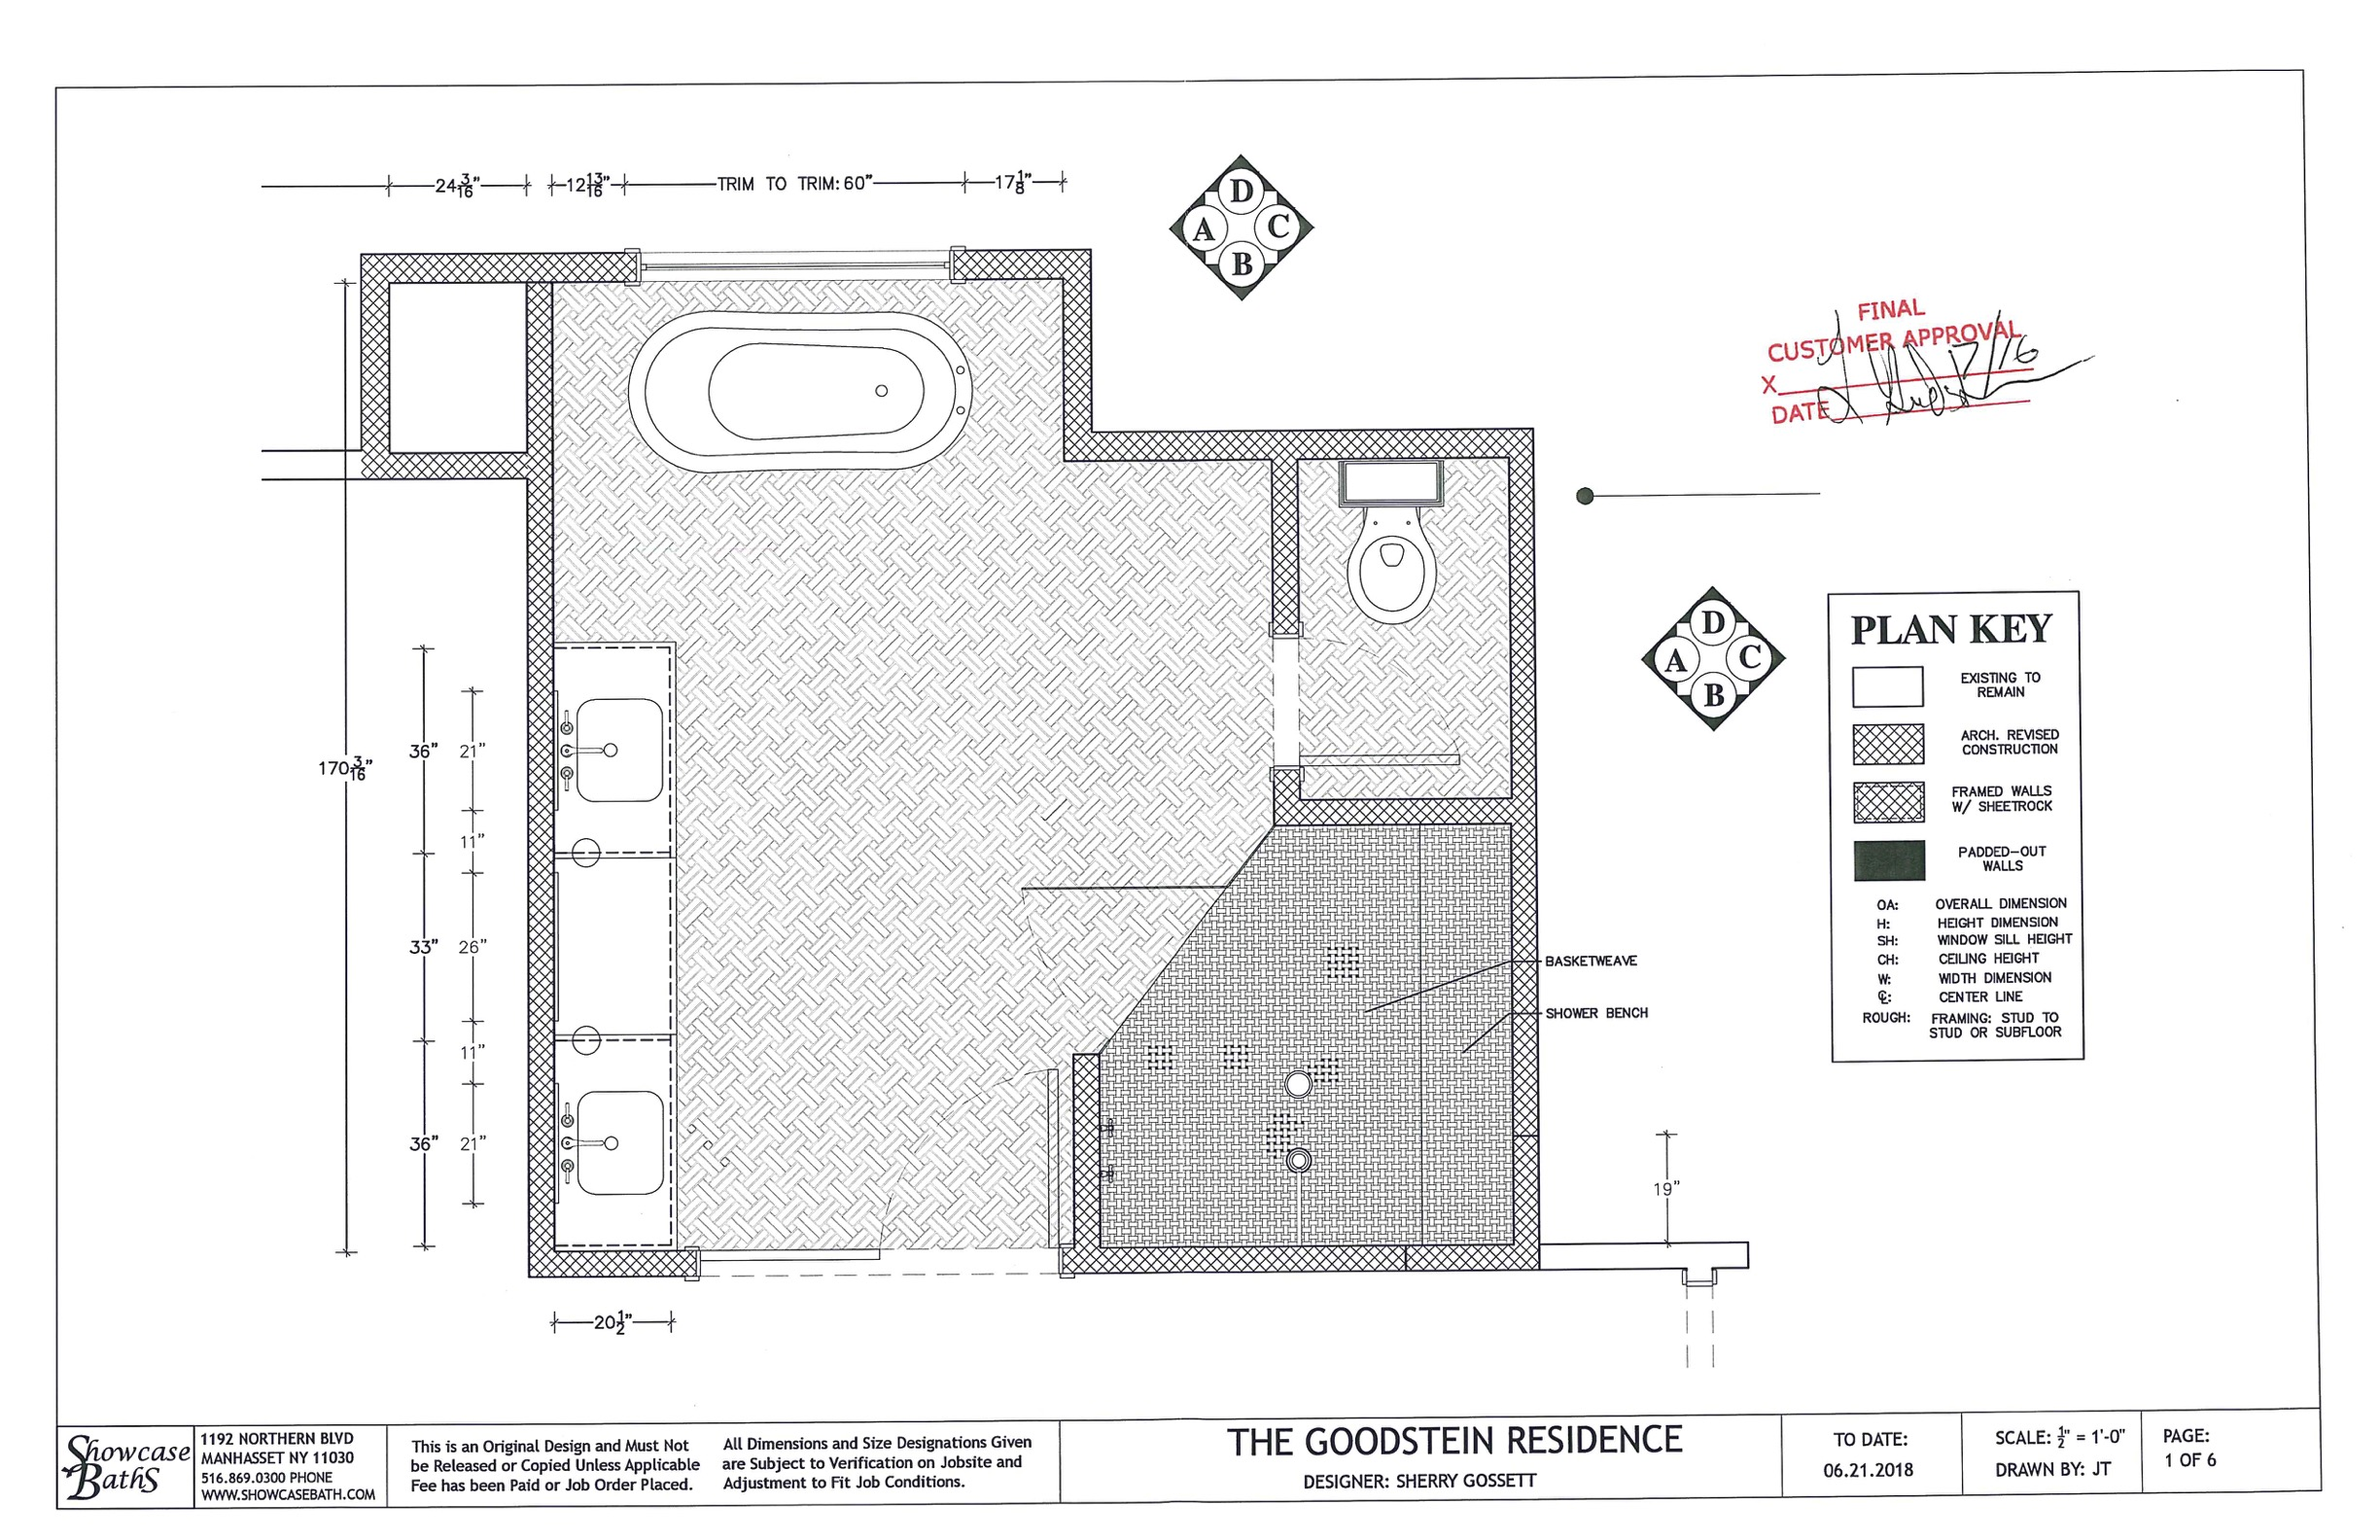 DESIGN SERVICES - Services may include floor plans, elevations and 3D renderings